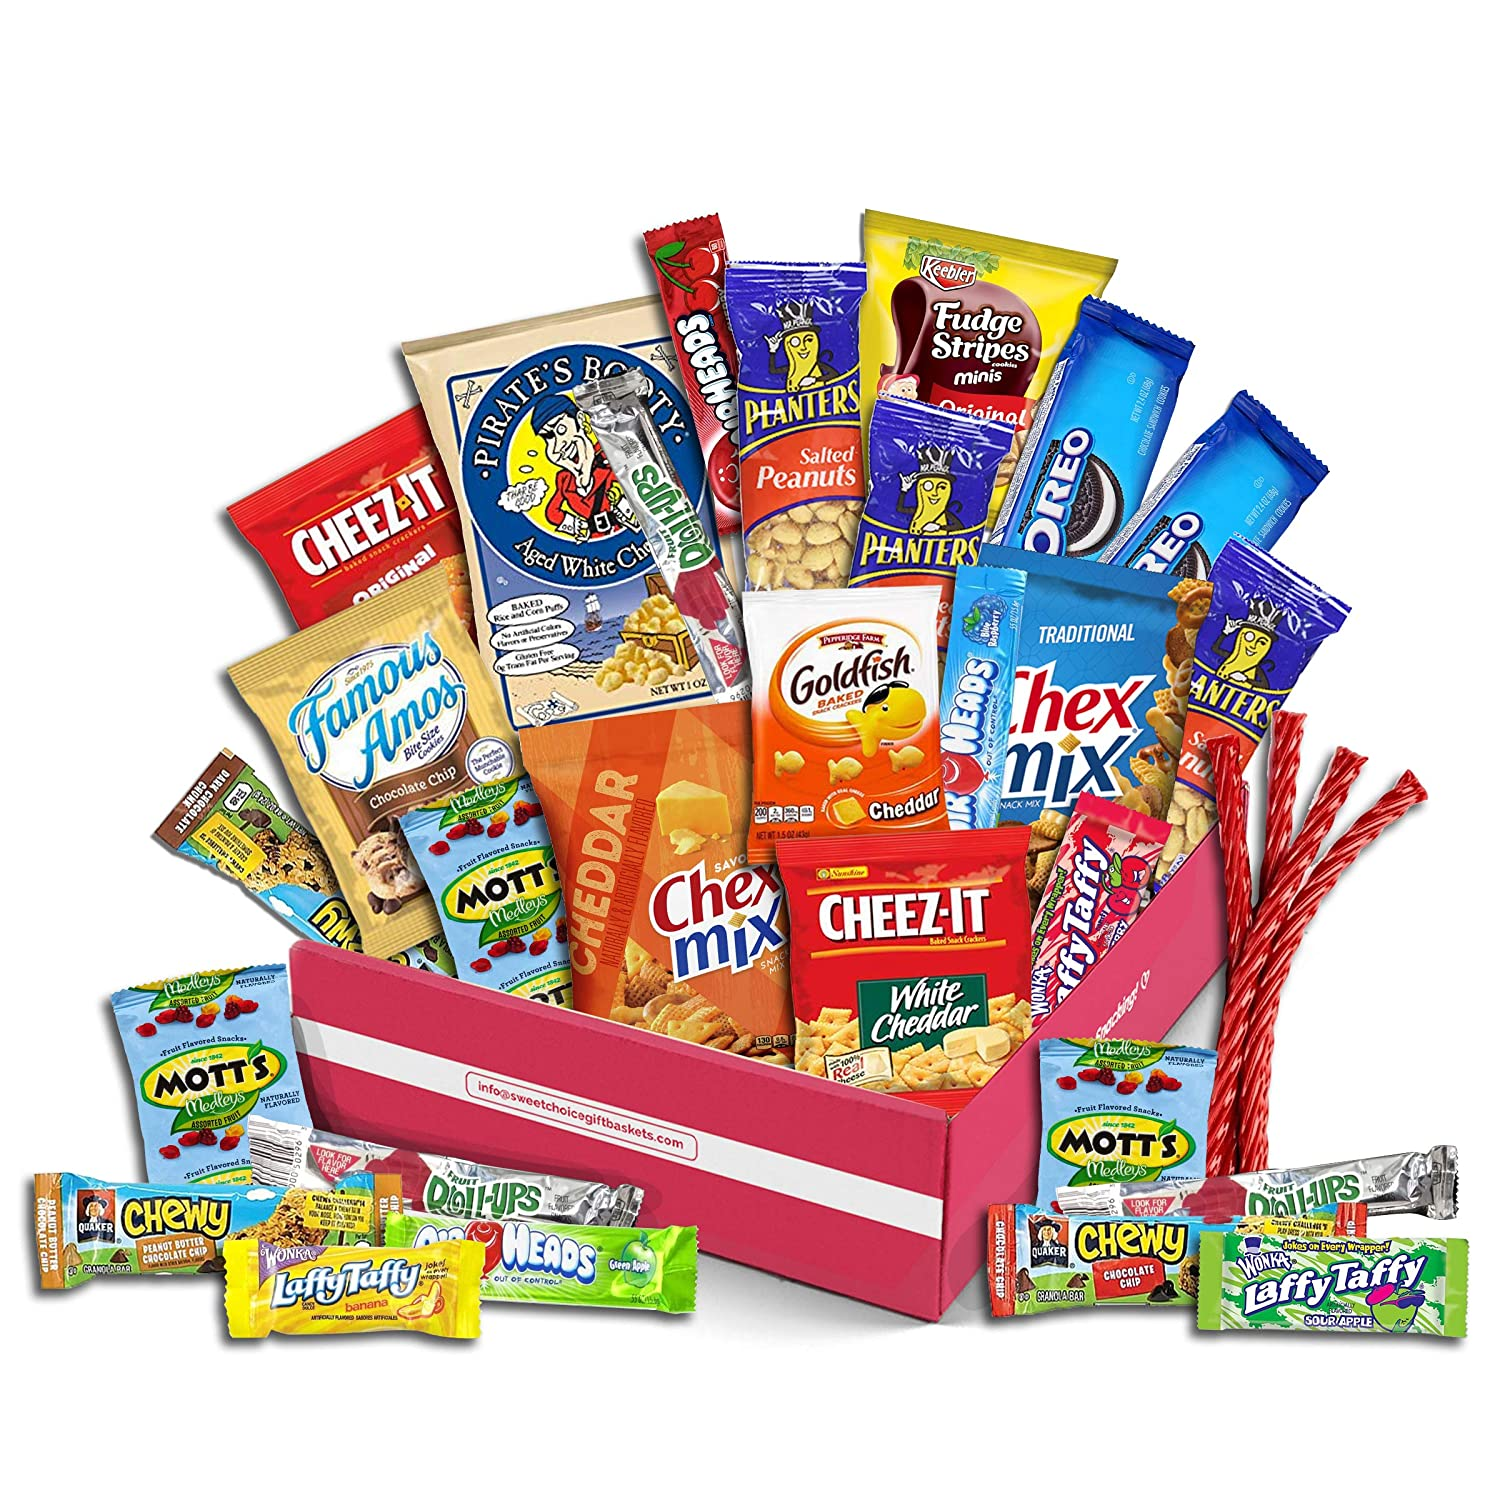 Snack Box Variety Pack, (30 Count) - College Student Care Package, Thanksgiving, Xmas Food Arrangement Chips, Cookies, Bars - Birthday Treats for Adults, Kids